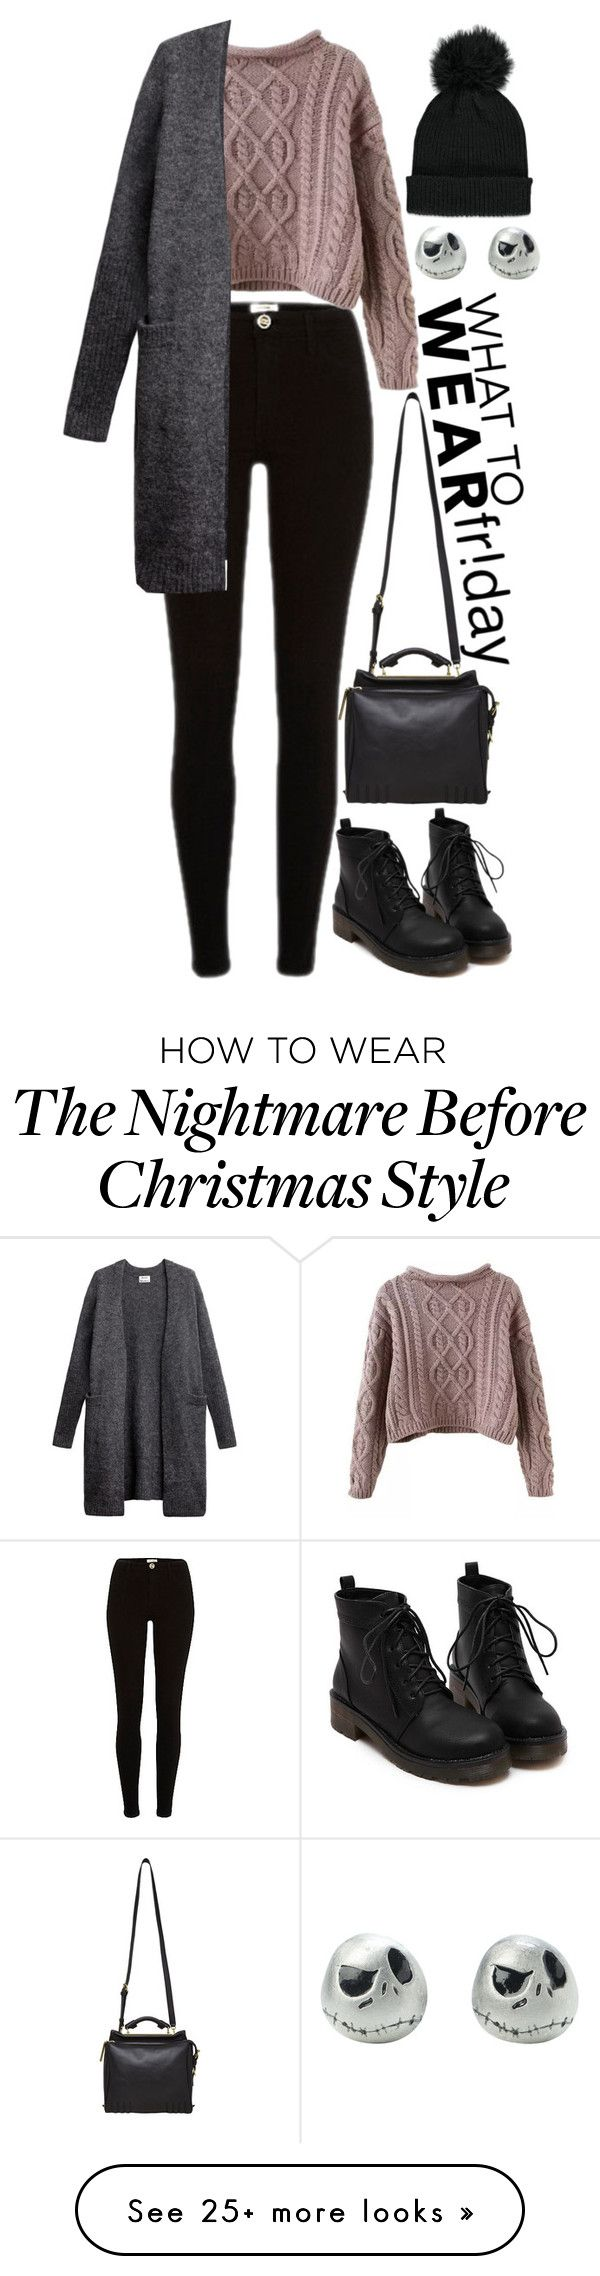 """""""1001."""" by adc421 on Polyvore featuring mode, Forever 21, 3.1 Phillip Lim et shoptilyoudrop"""